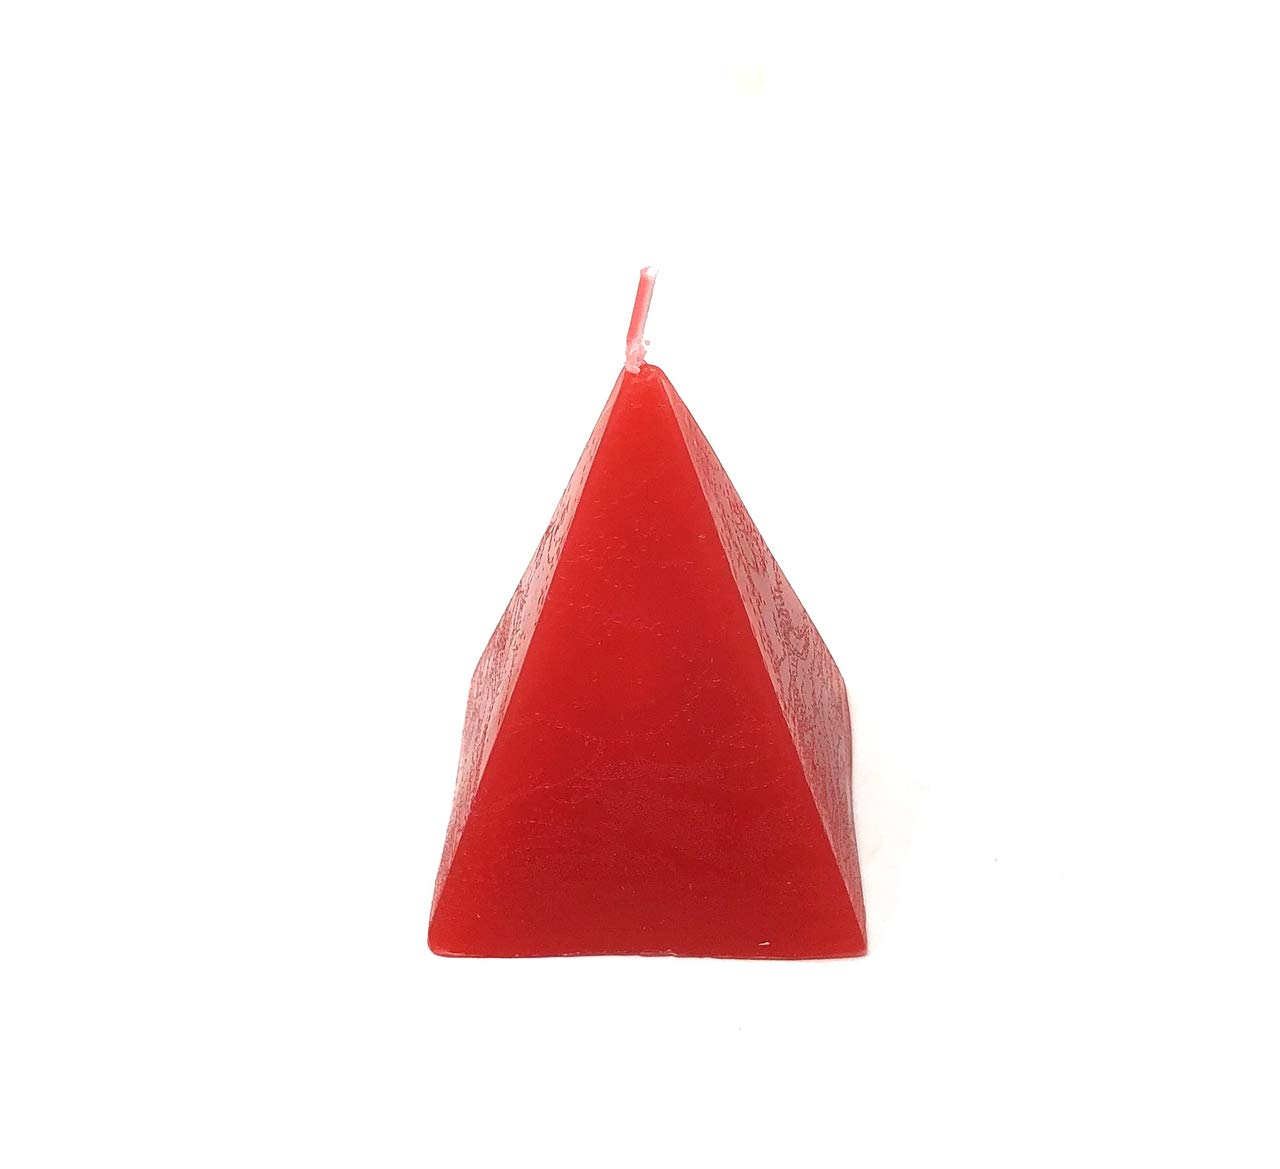 Blue Pine Pentagram Decorative Colored Pyramid Candle for Wicca Hoodoo and Pagan Spell Rituals